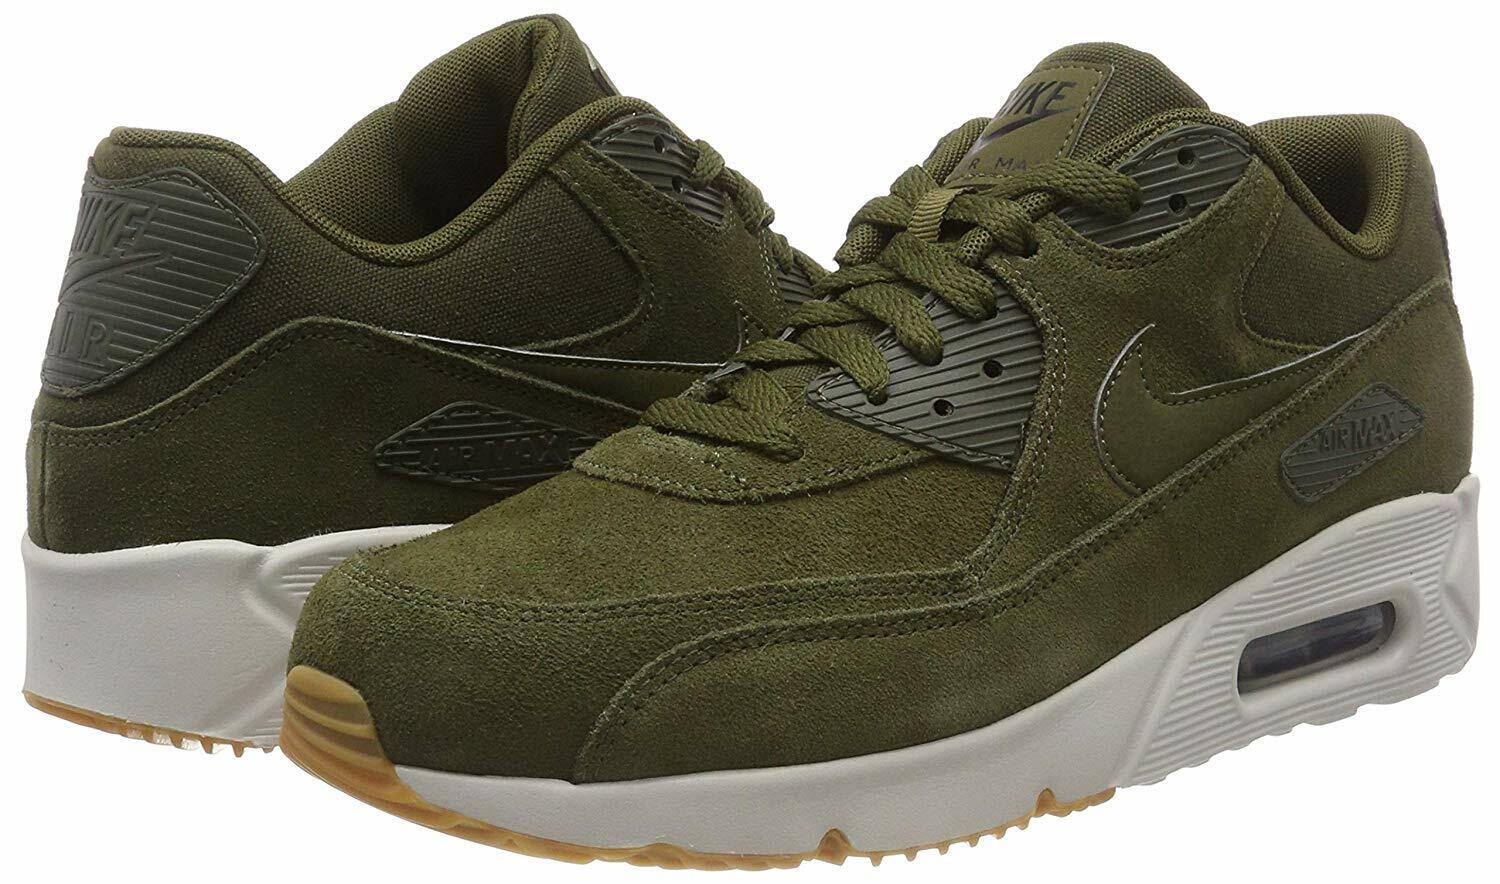 NEW Nike Air Max 90 Ultra 2.0 LTR Men's Olive Canvas Leather Green 924447 301